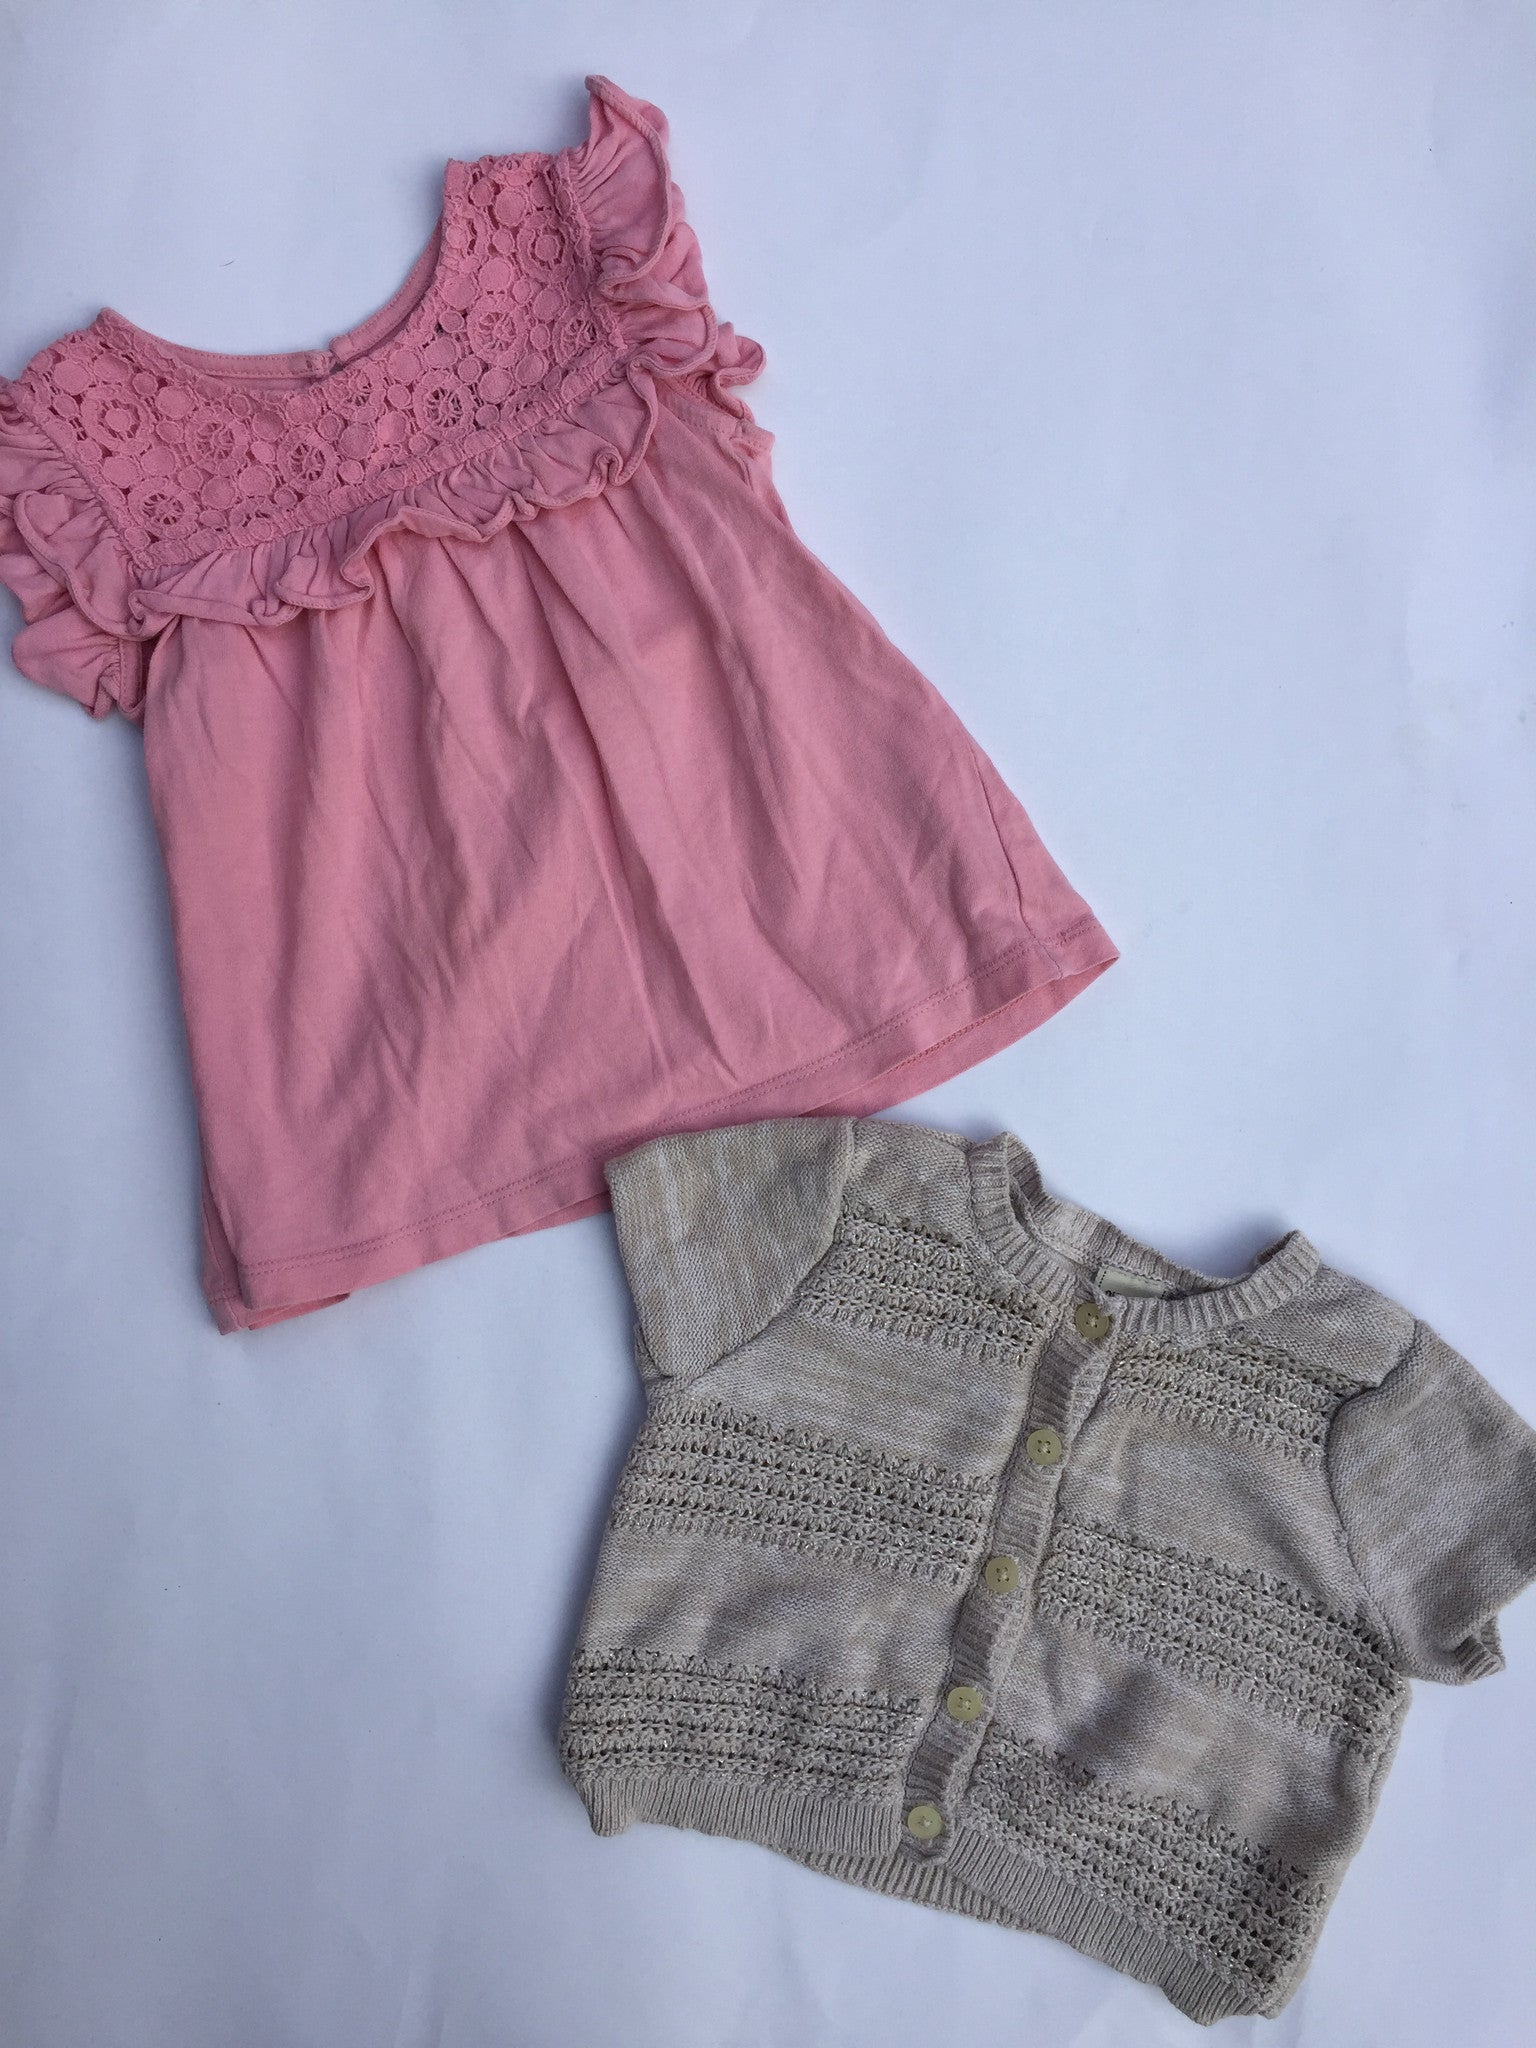 Baby Gap Shirt + Old Navy Sweater | 18-24M